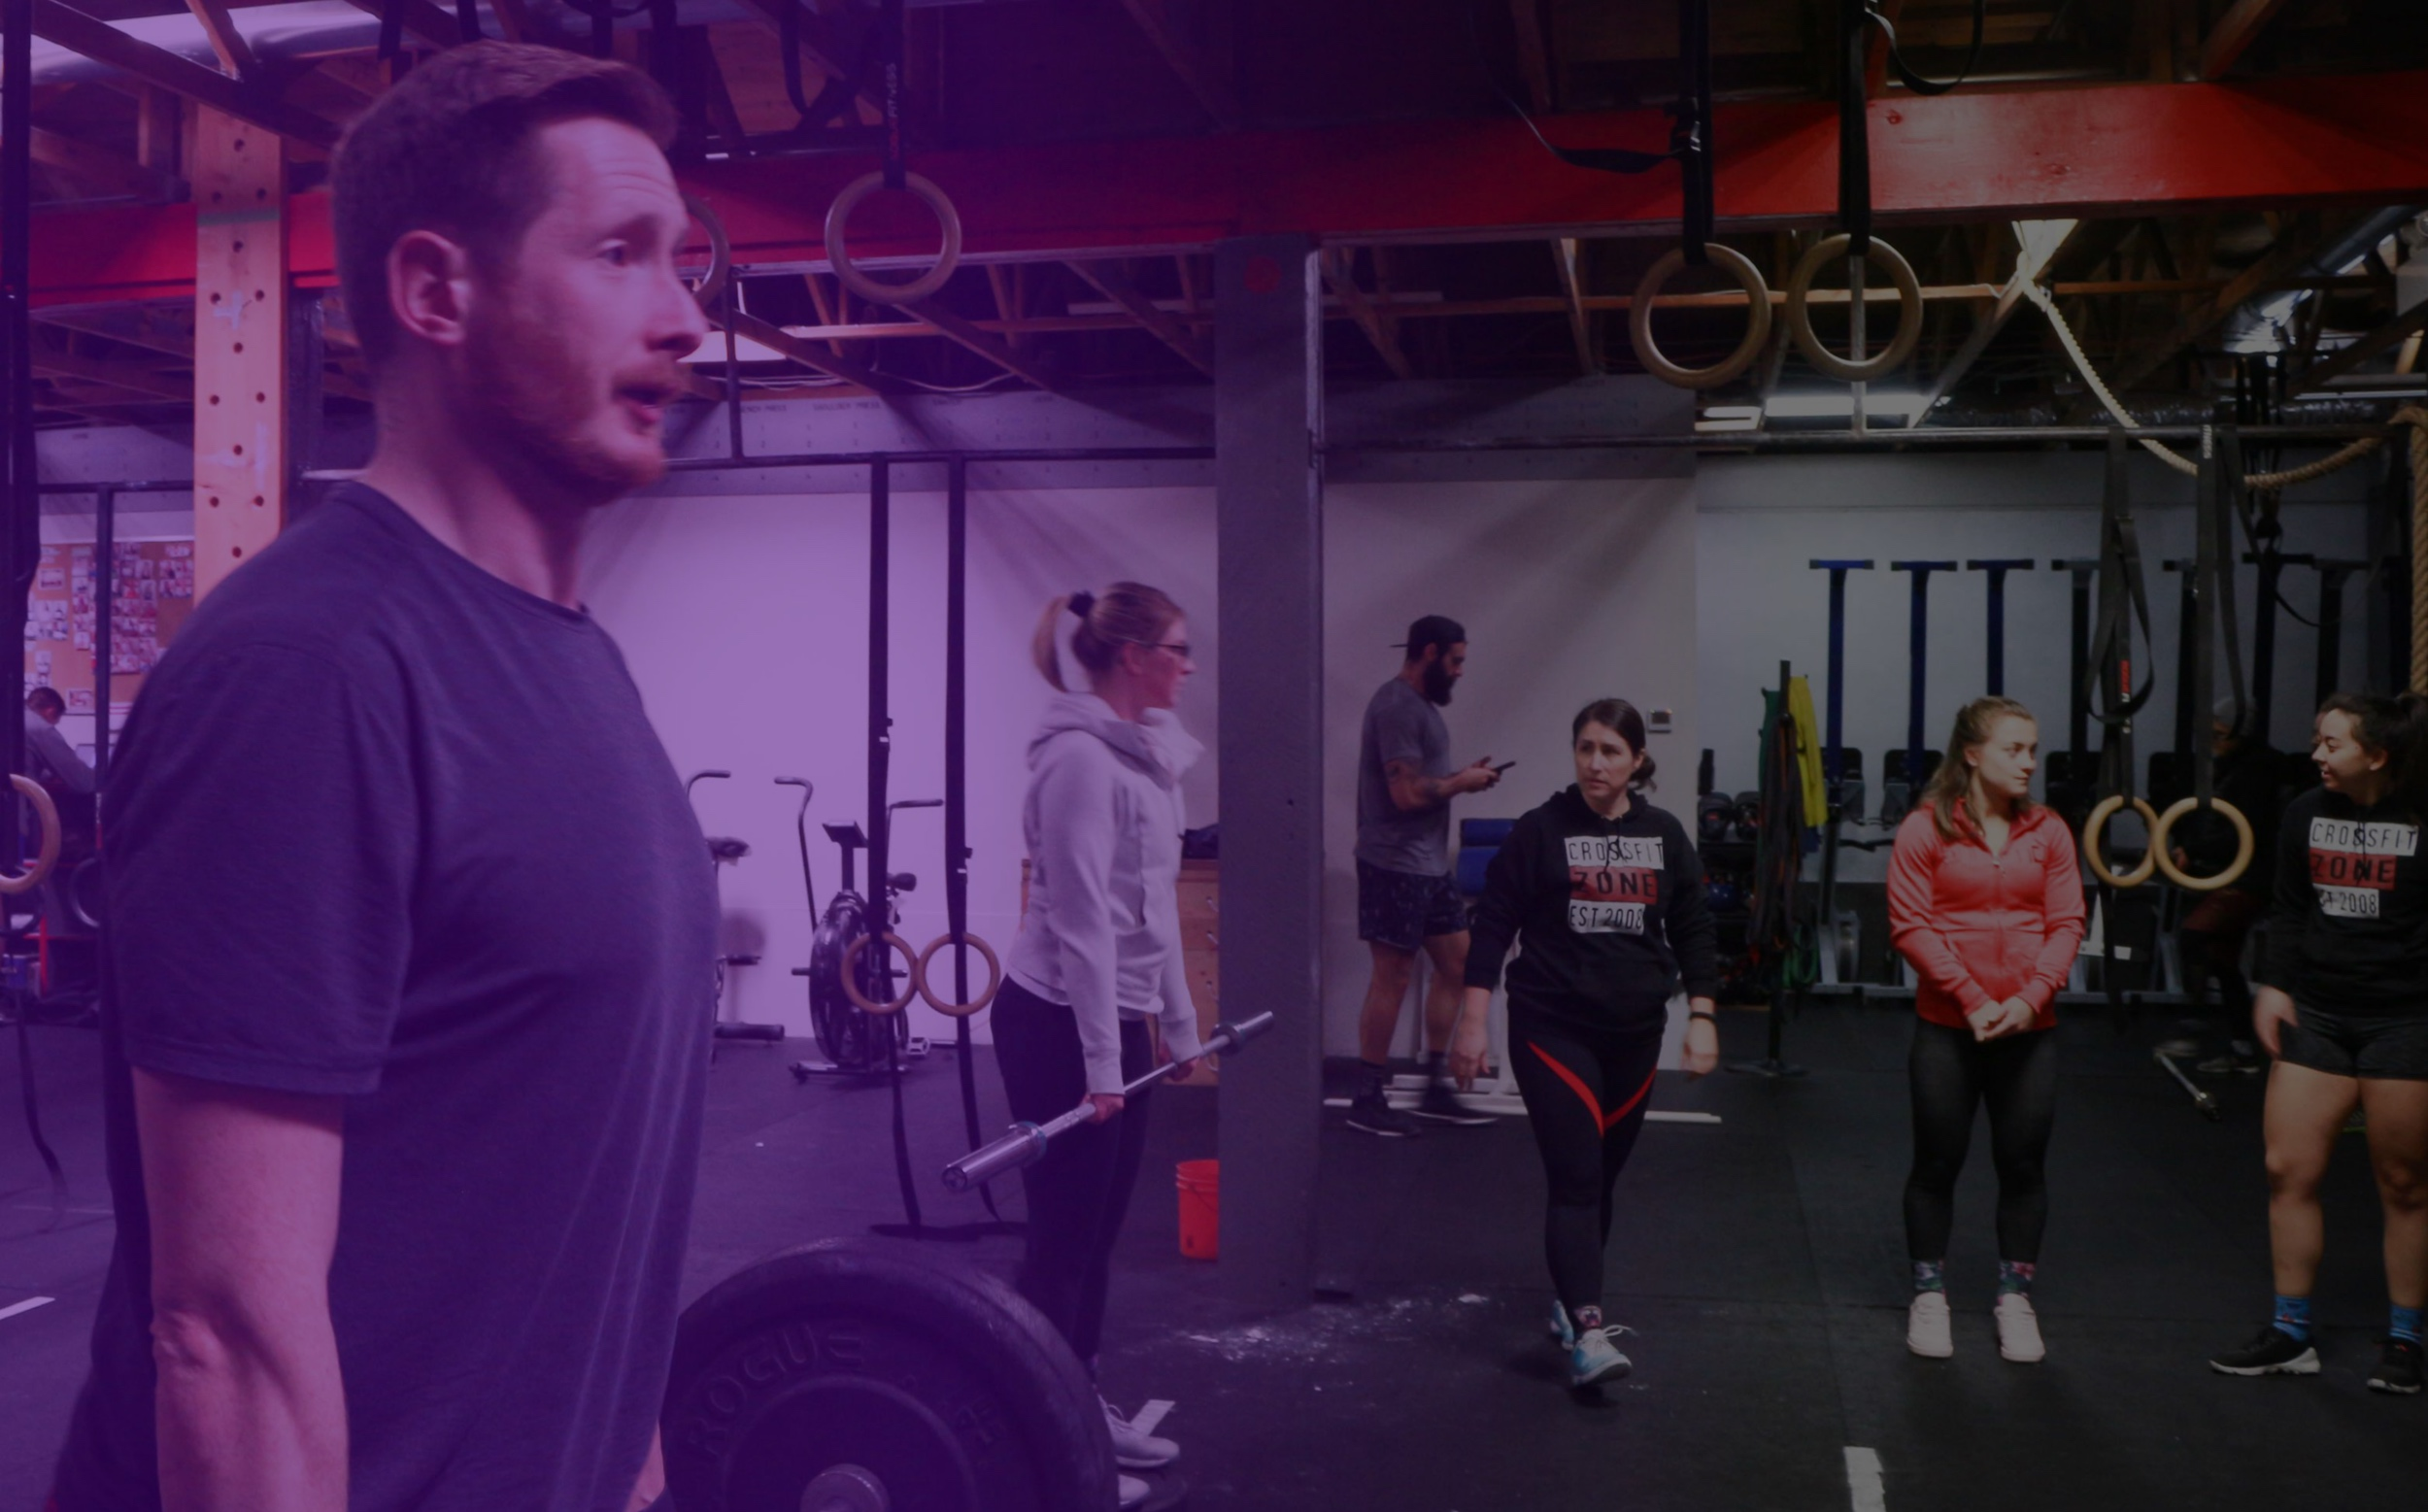 Drop in & Visitors - Looking to catch a workout while you're in town? No problem. We love visitors. There are just a couple of rules you'll need to follow.1) Have at least 6 months of CrossFit experience. 2) Come a few minutes early to sign the waiver. 3) Have fun!Drop in rate is $20